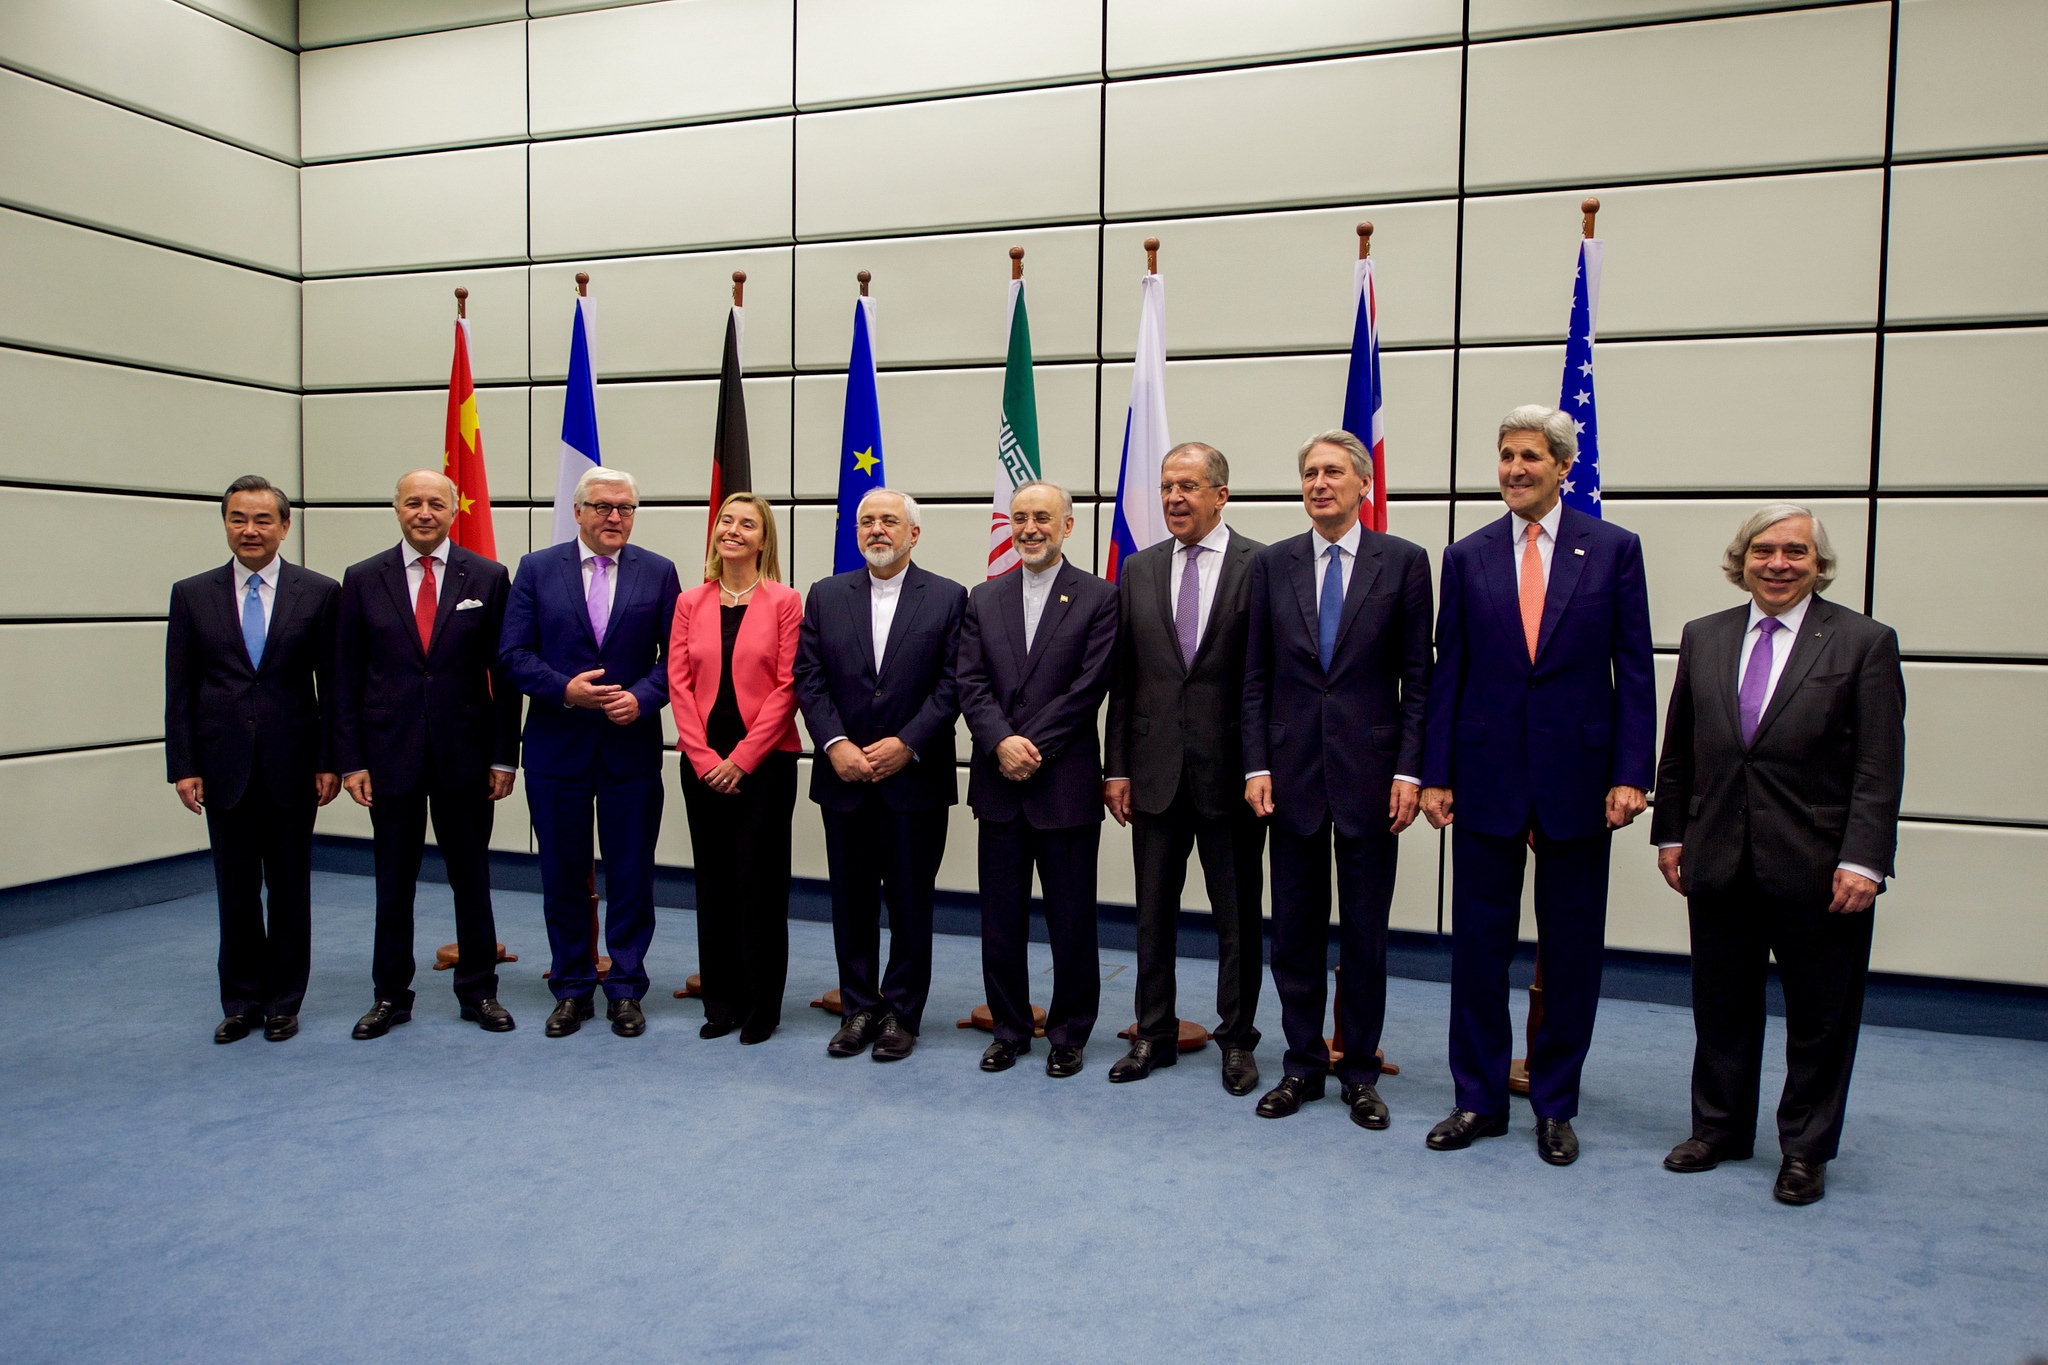 Secretary Kerry Poses for a Group Photo With E.U., P5+1, and Iranian Officials Before Final Plenary of Iran Nuclear Negotiations in Austria - USDOS Photo (July 14, 2015)